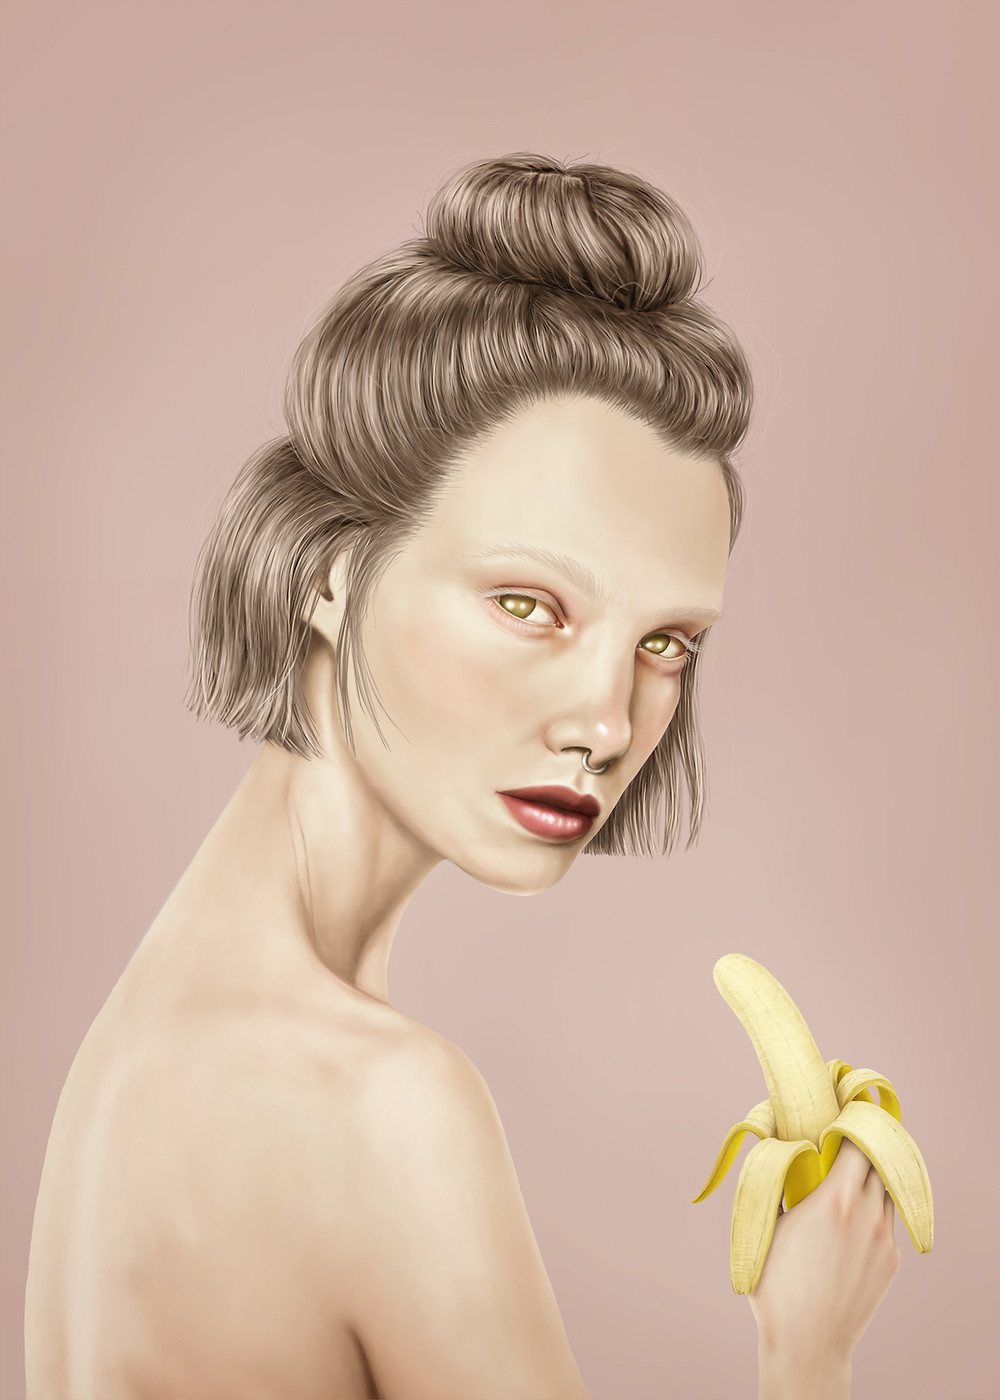 No, it's a banana. Sometimes a woman just wants to sit naked and eat her damn banana in peace. It's a bloody fruit and a great snack for those hangry moments.